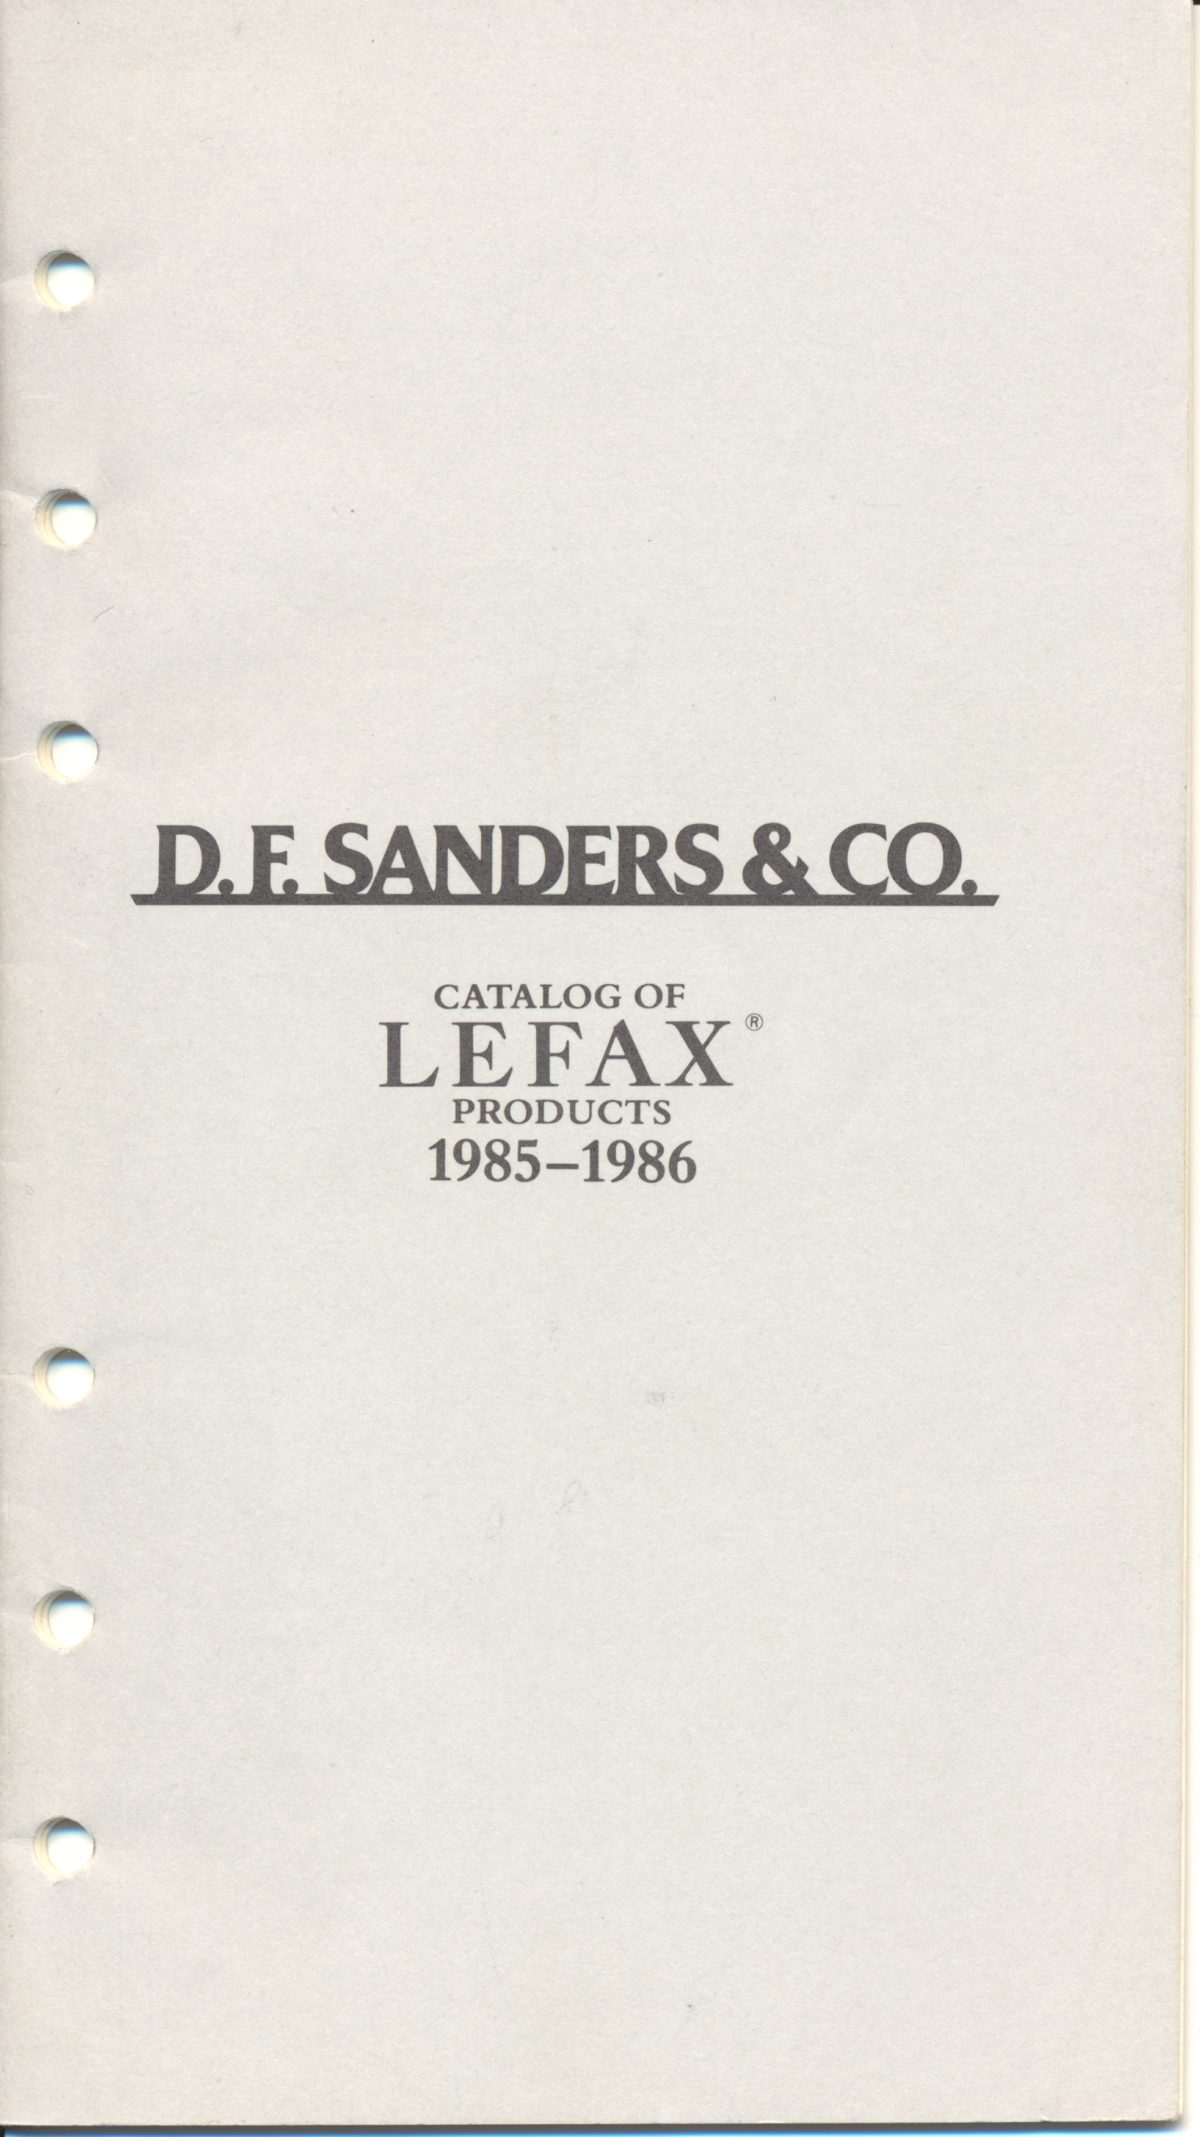 D.F. Sanders & Co – Lefax Catalogue 1985